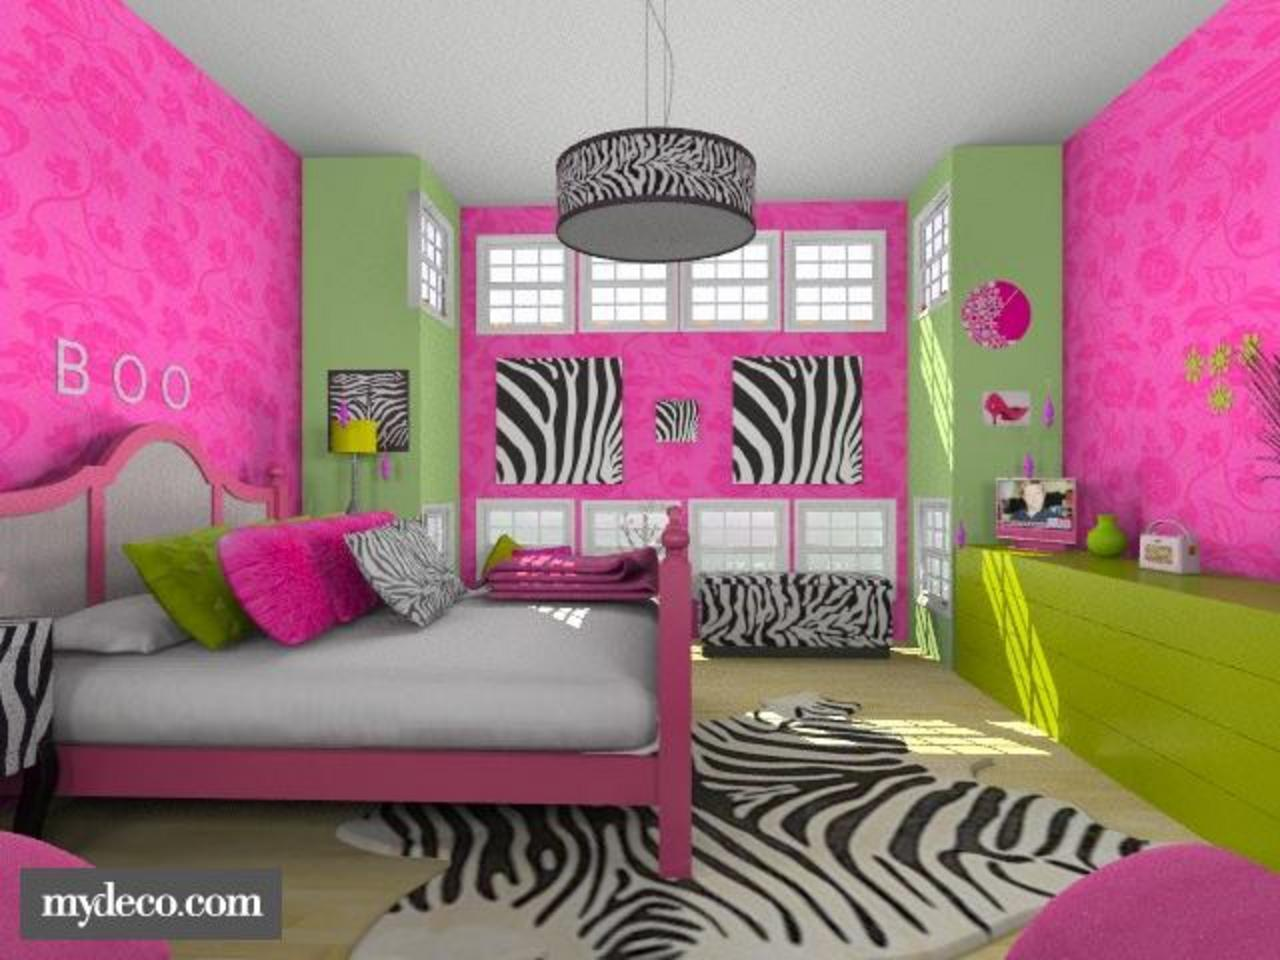 12 Year Old Girl Bedroom Contest On Roomstyler